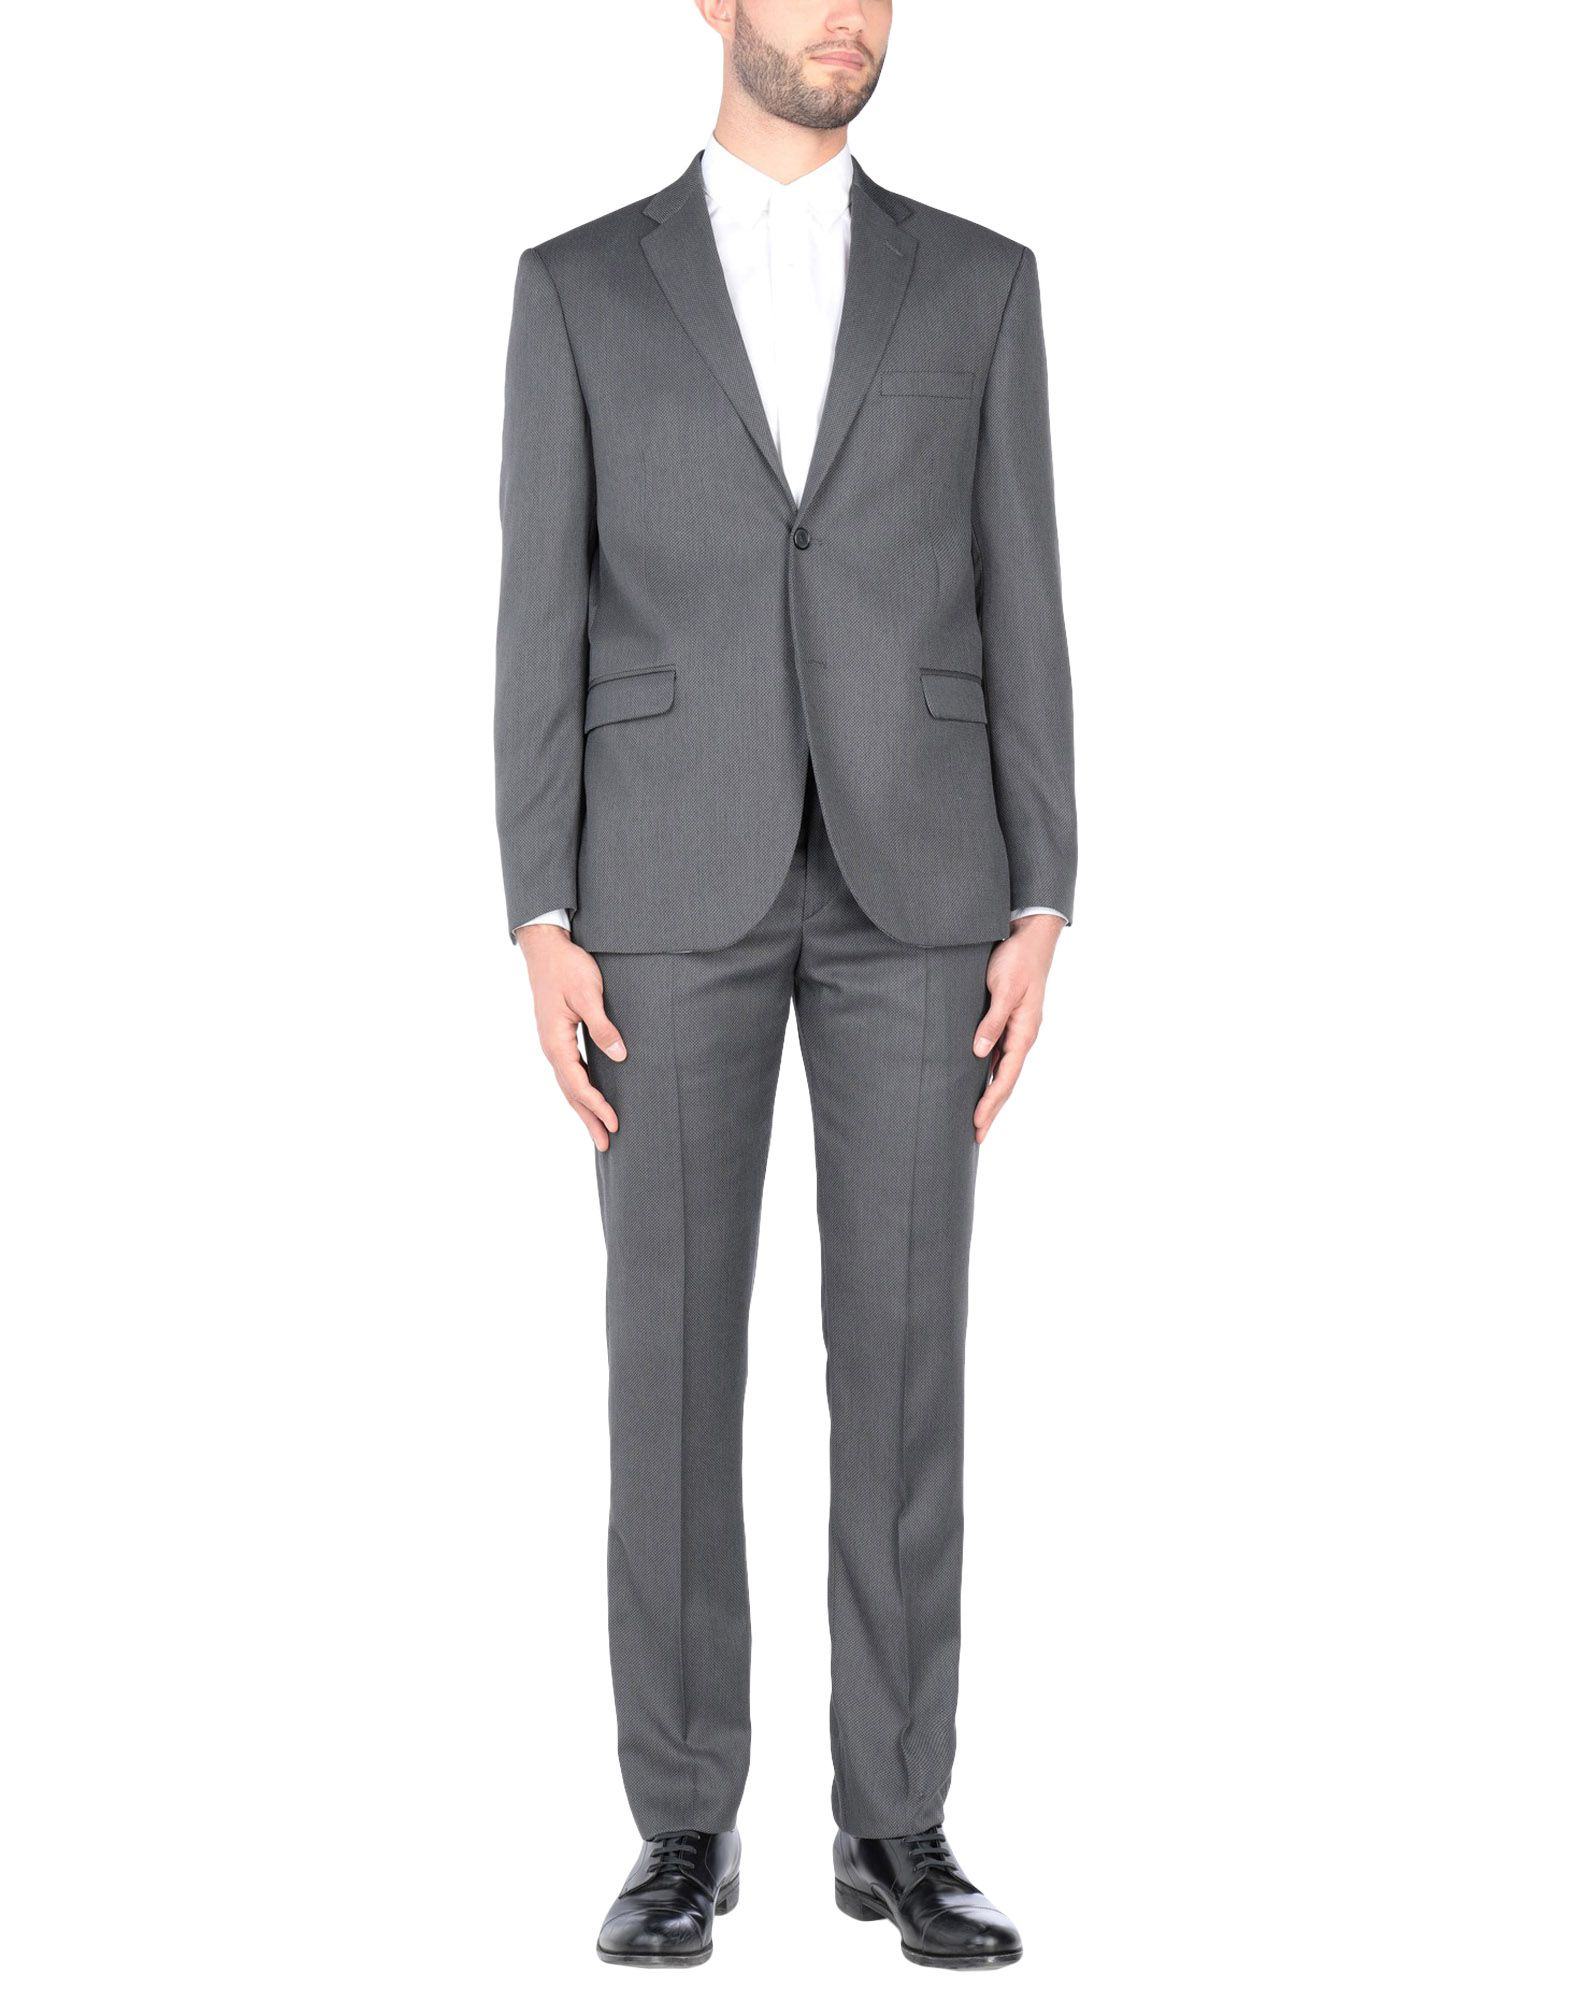 ALESSANDRO GILLES | ALESSANDRO GILLES Suits | Goxip